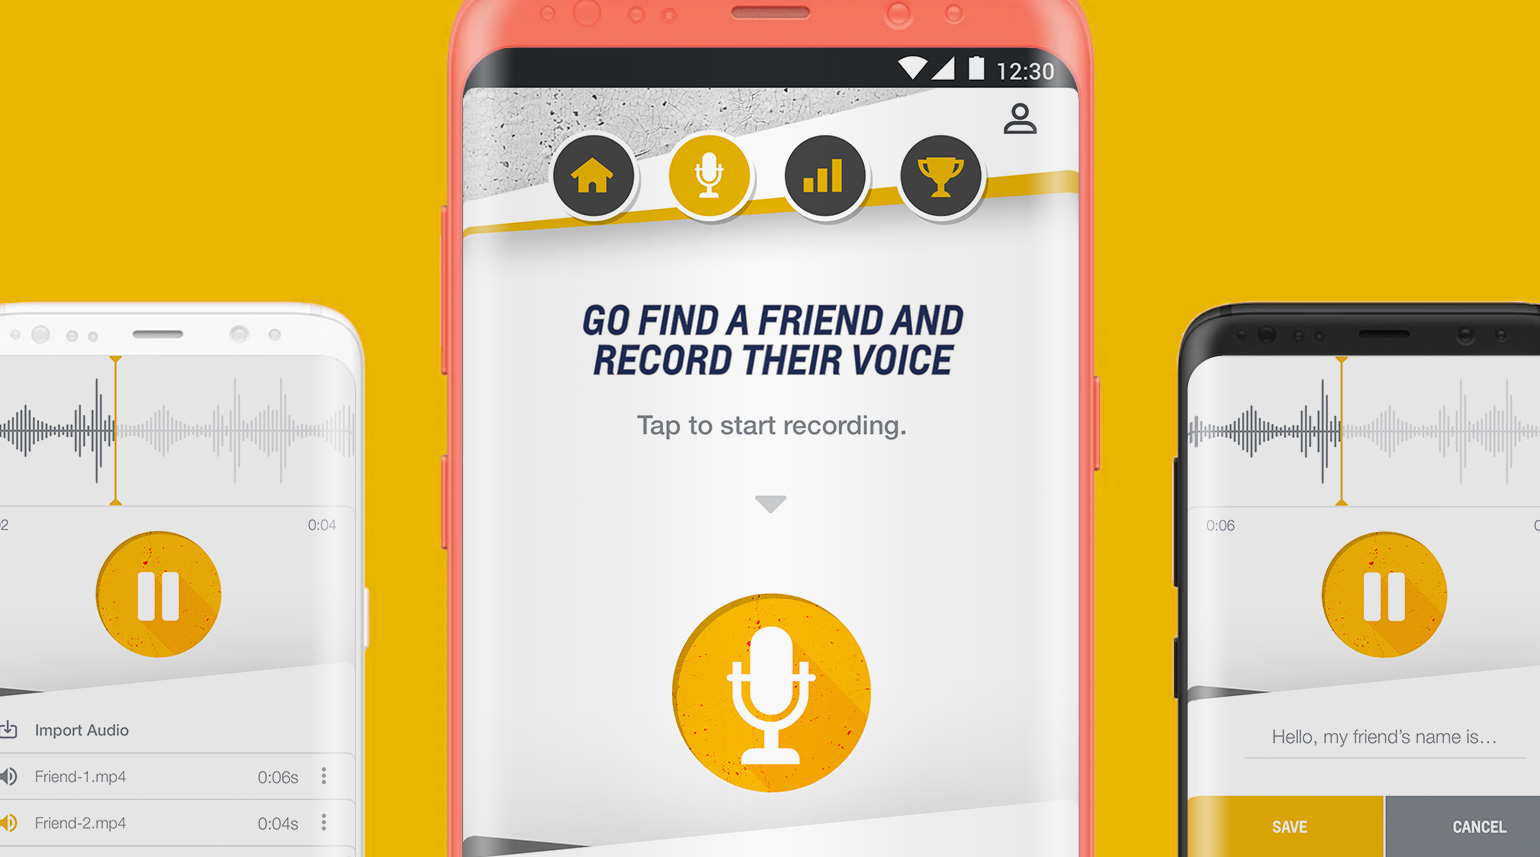 UI to pre-record a personalized audio message within the Call Me Out mobile app.